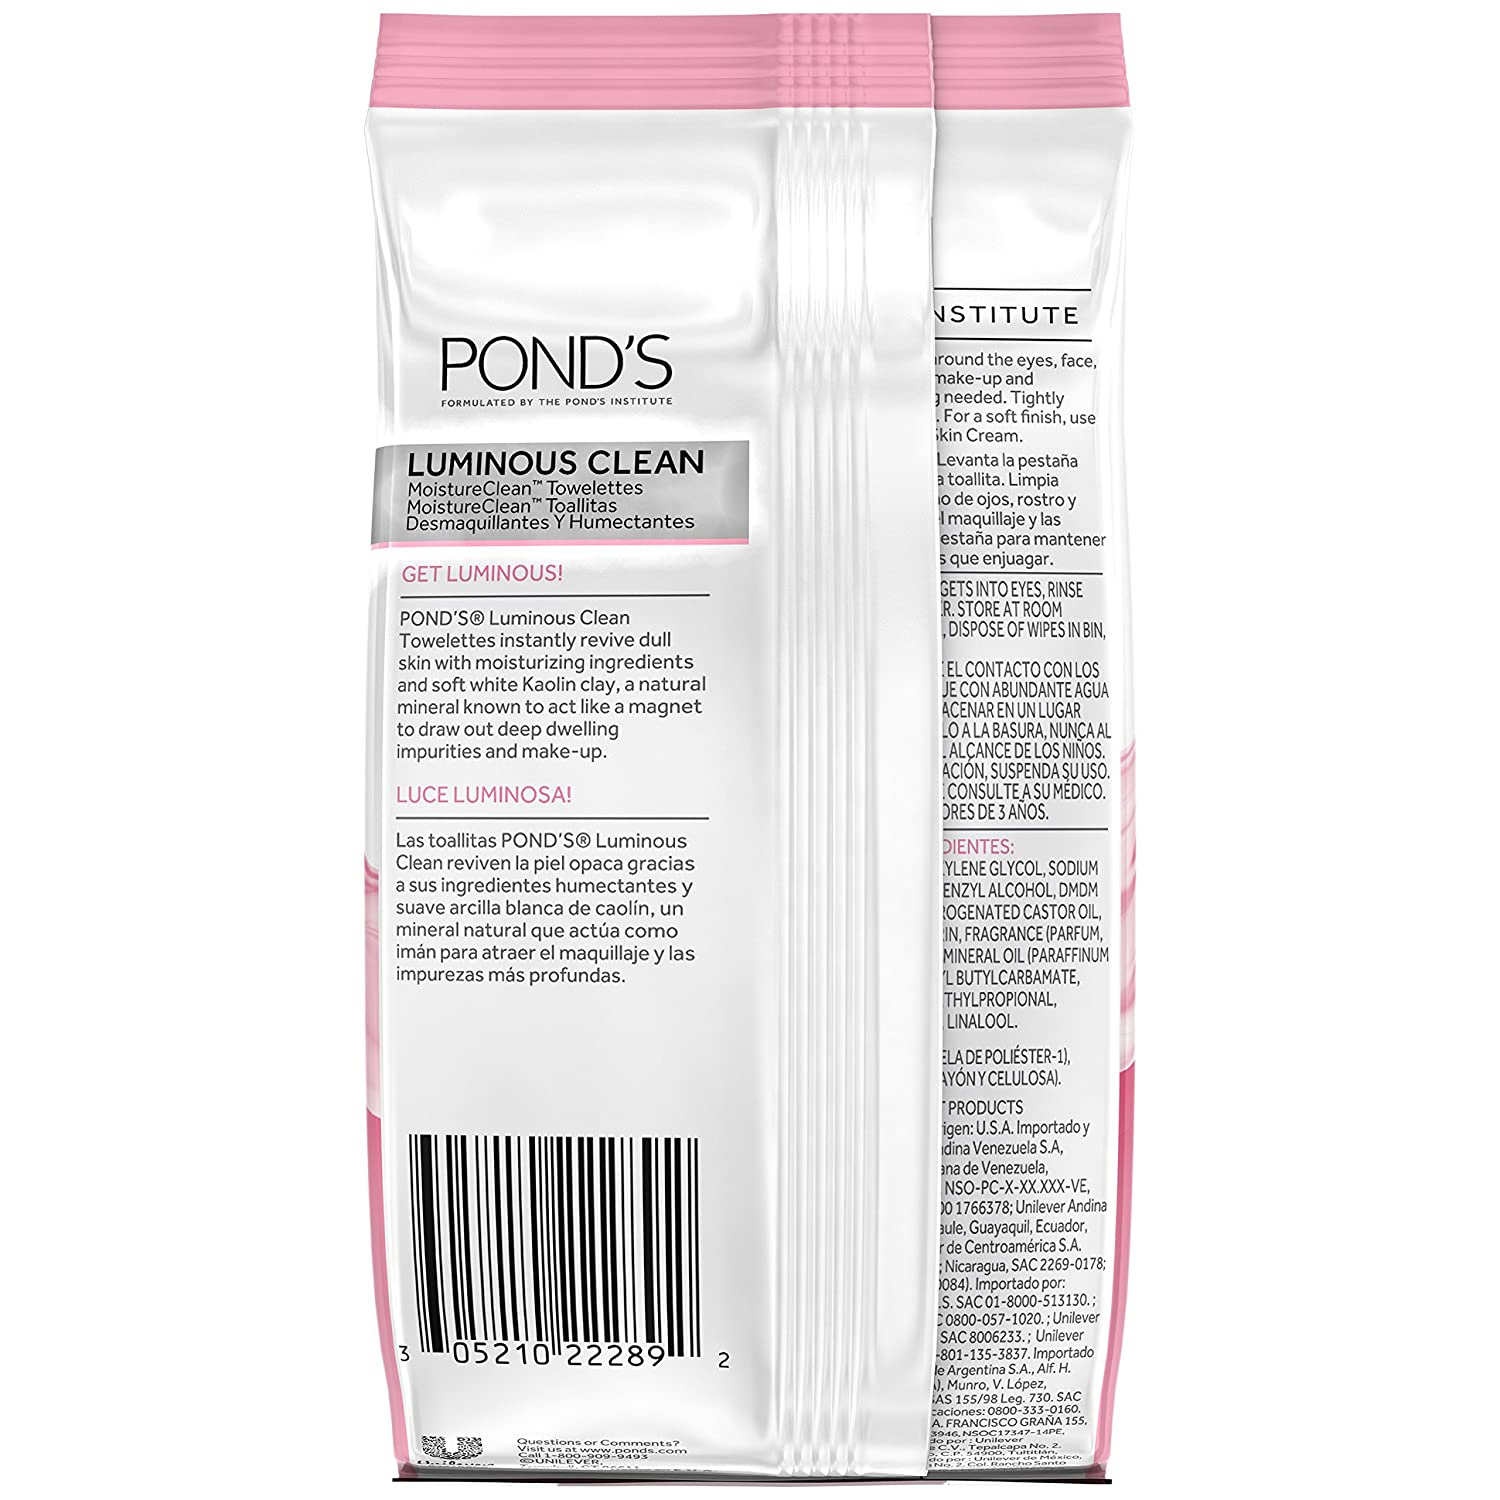 Amazon.com: Ponds Luminous Clean Moisture Clean Towelettes With Cold Cream Technology 28 Each (Pack of 2): Beauty